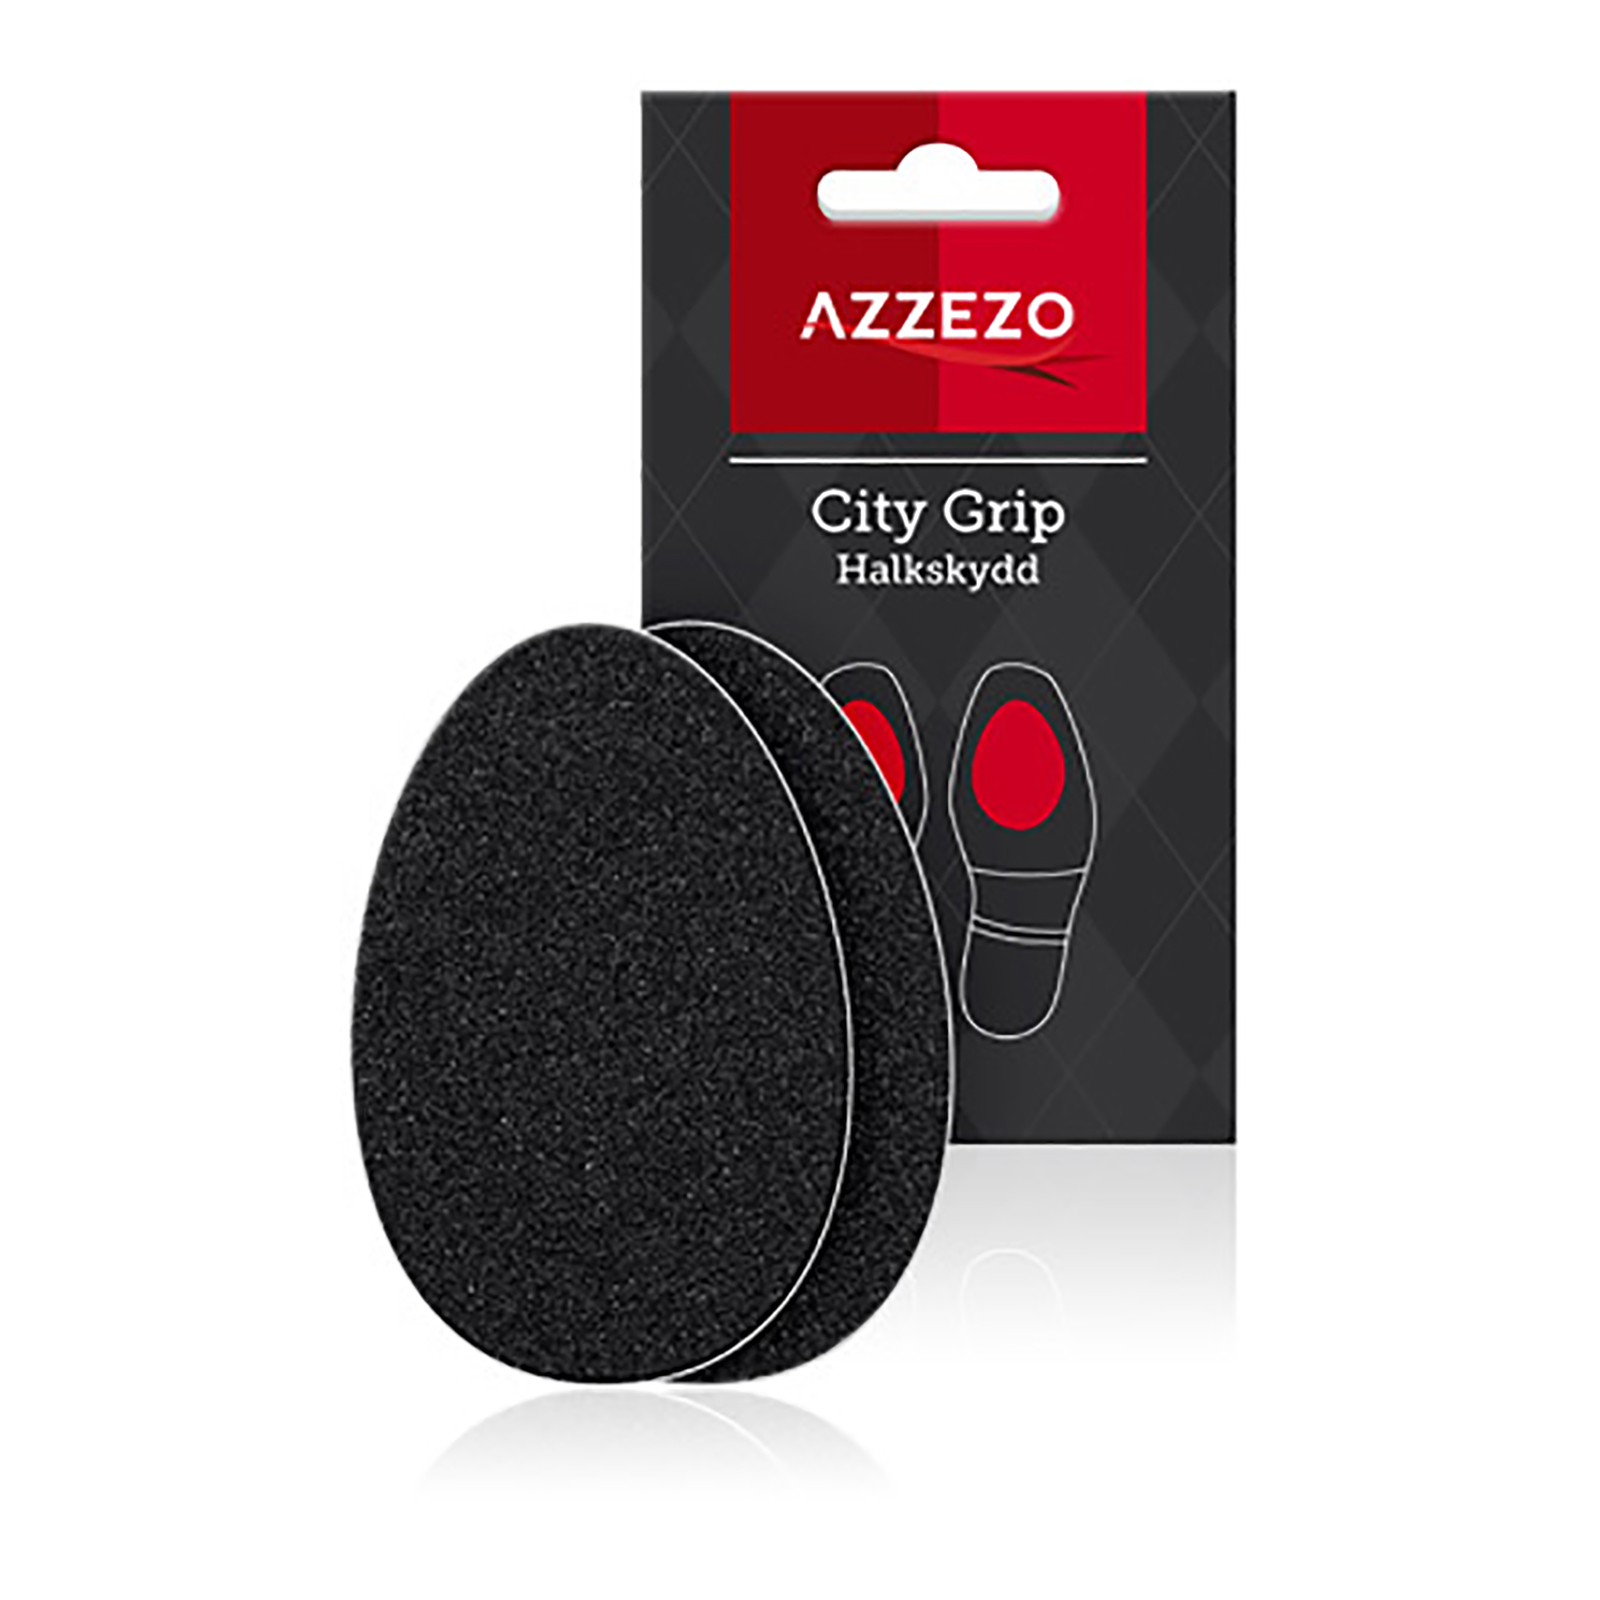 City Grip päkiäliukueste